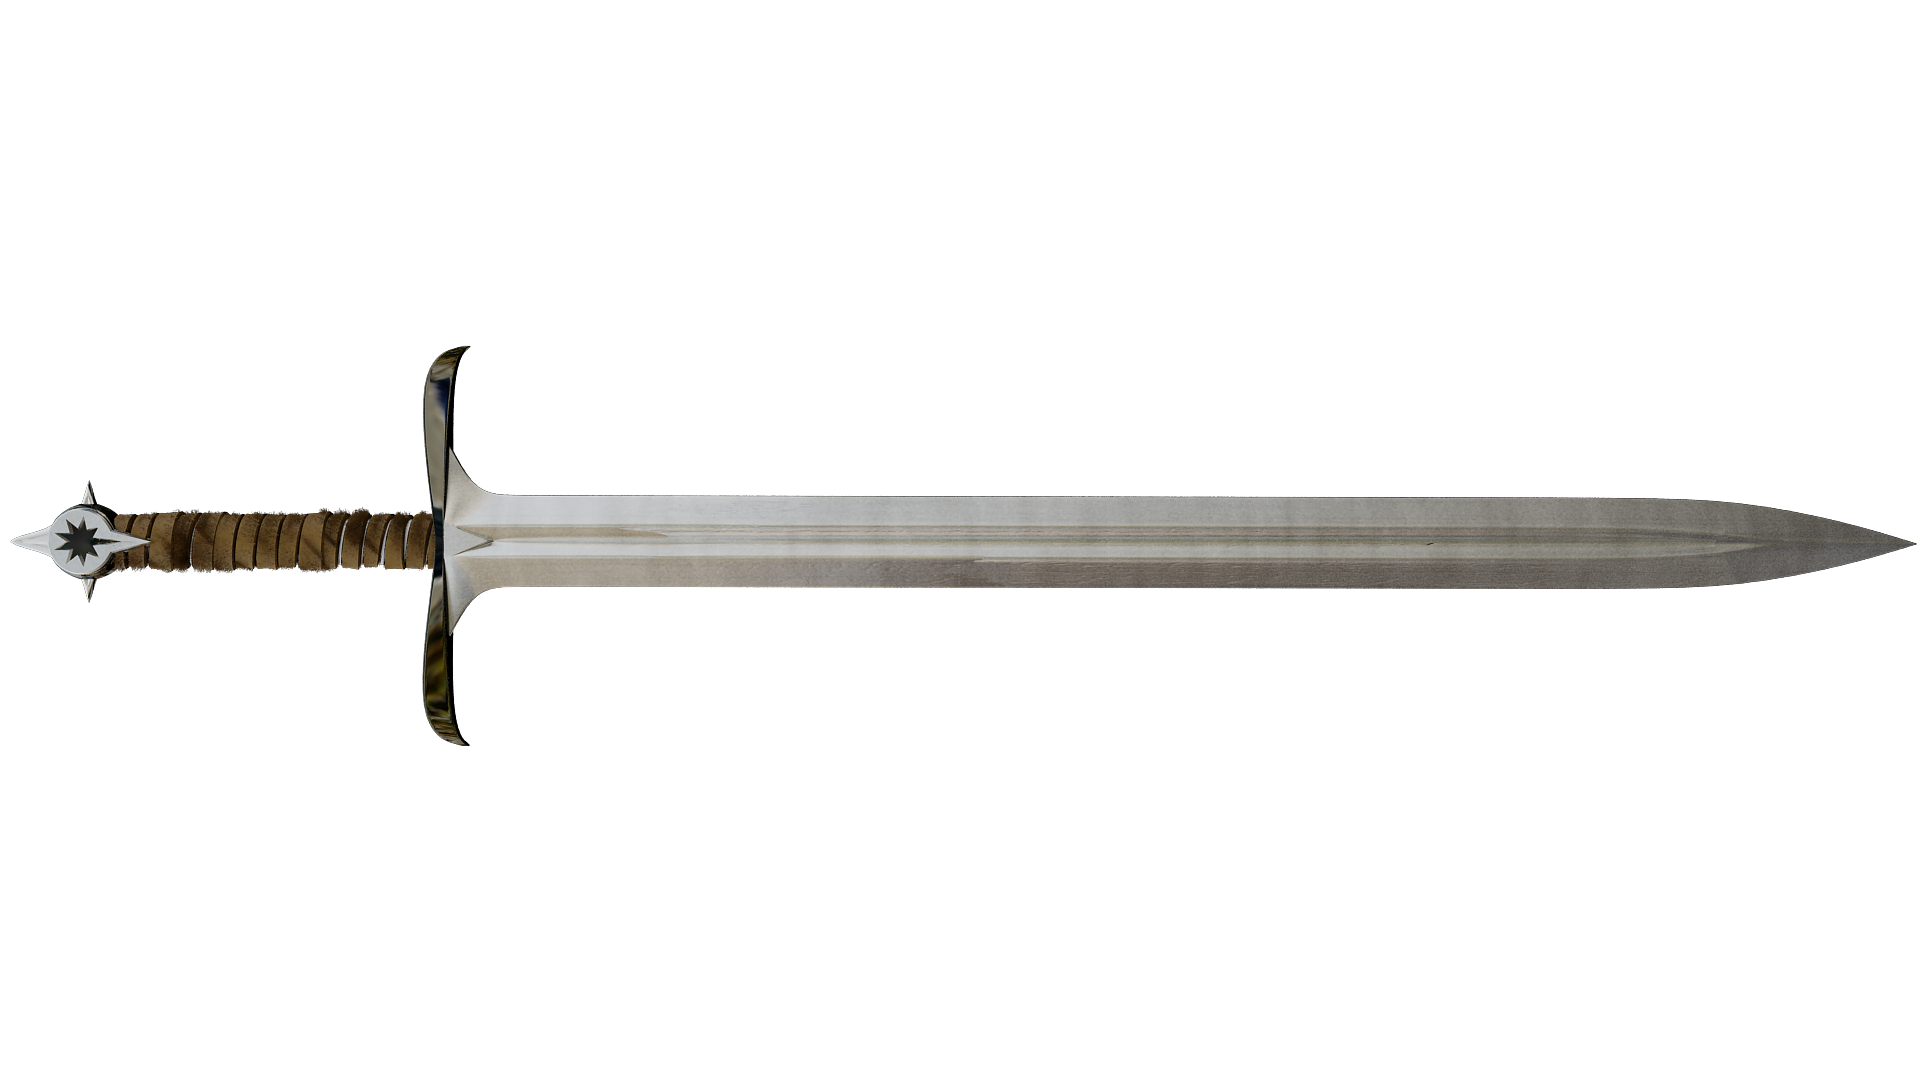 Libr' FantasYmaniA Sword-hd-png-sword-png-image-1920